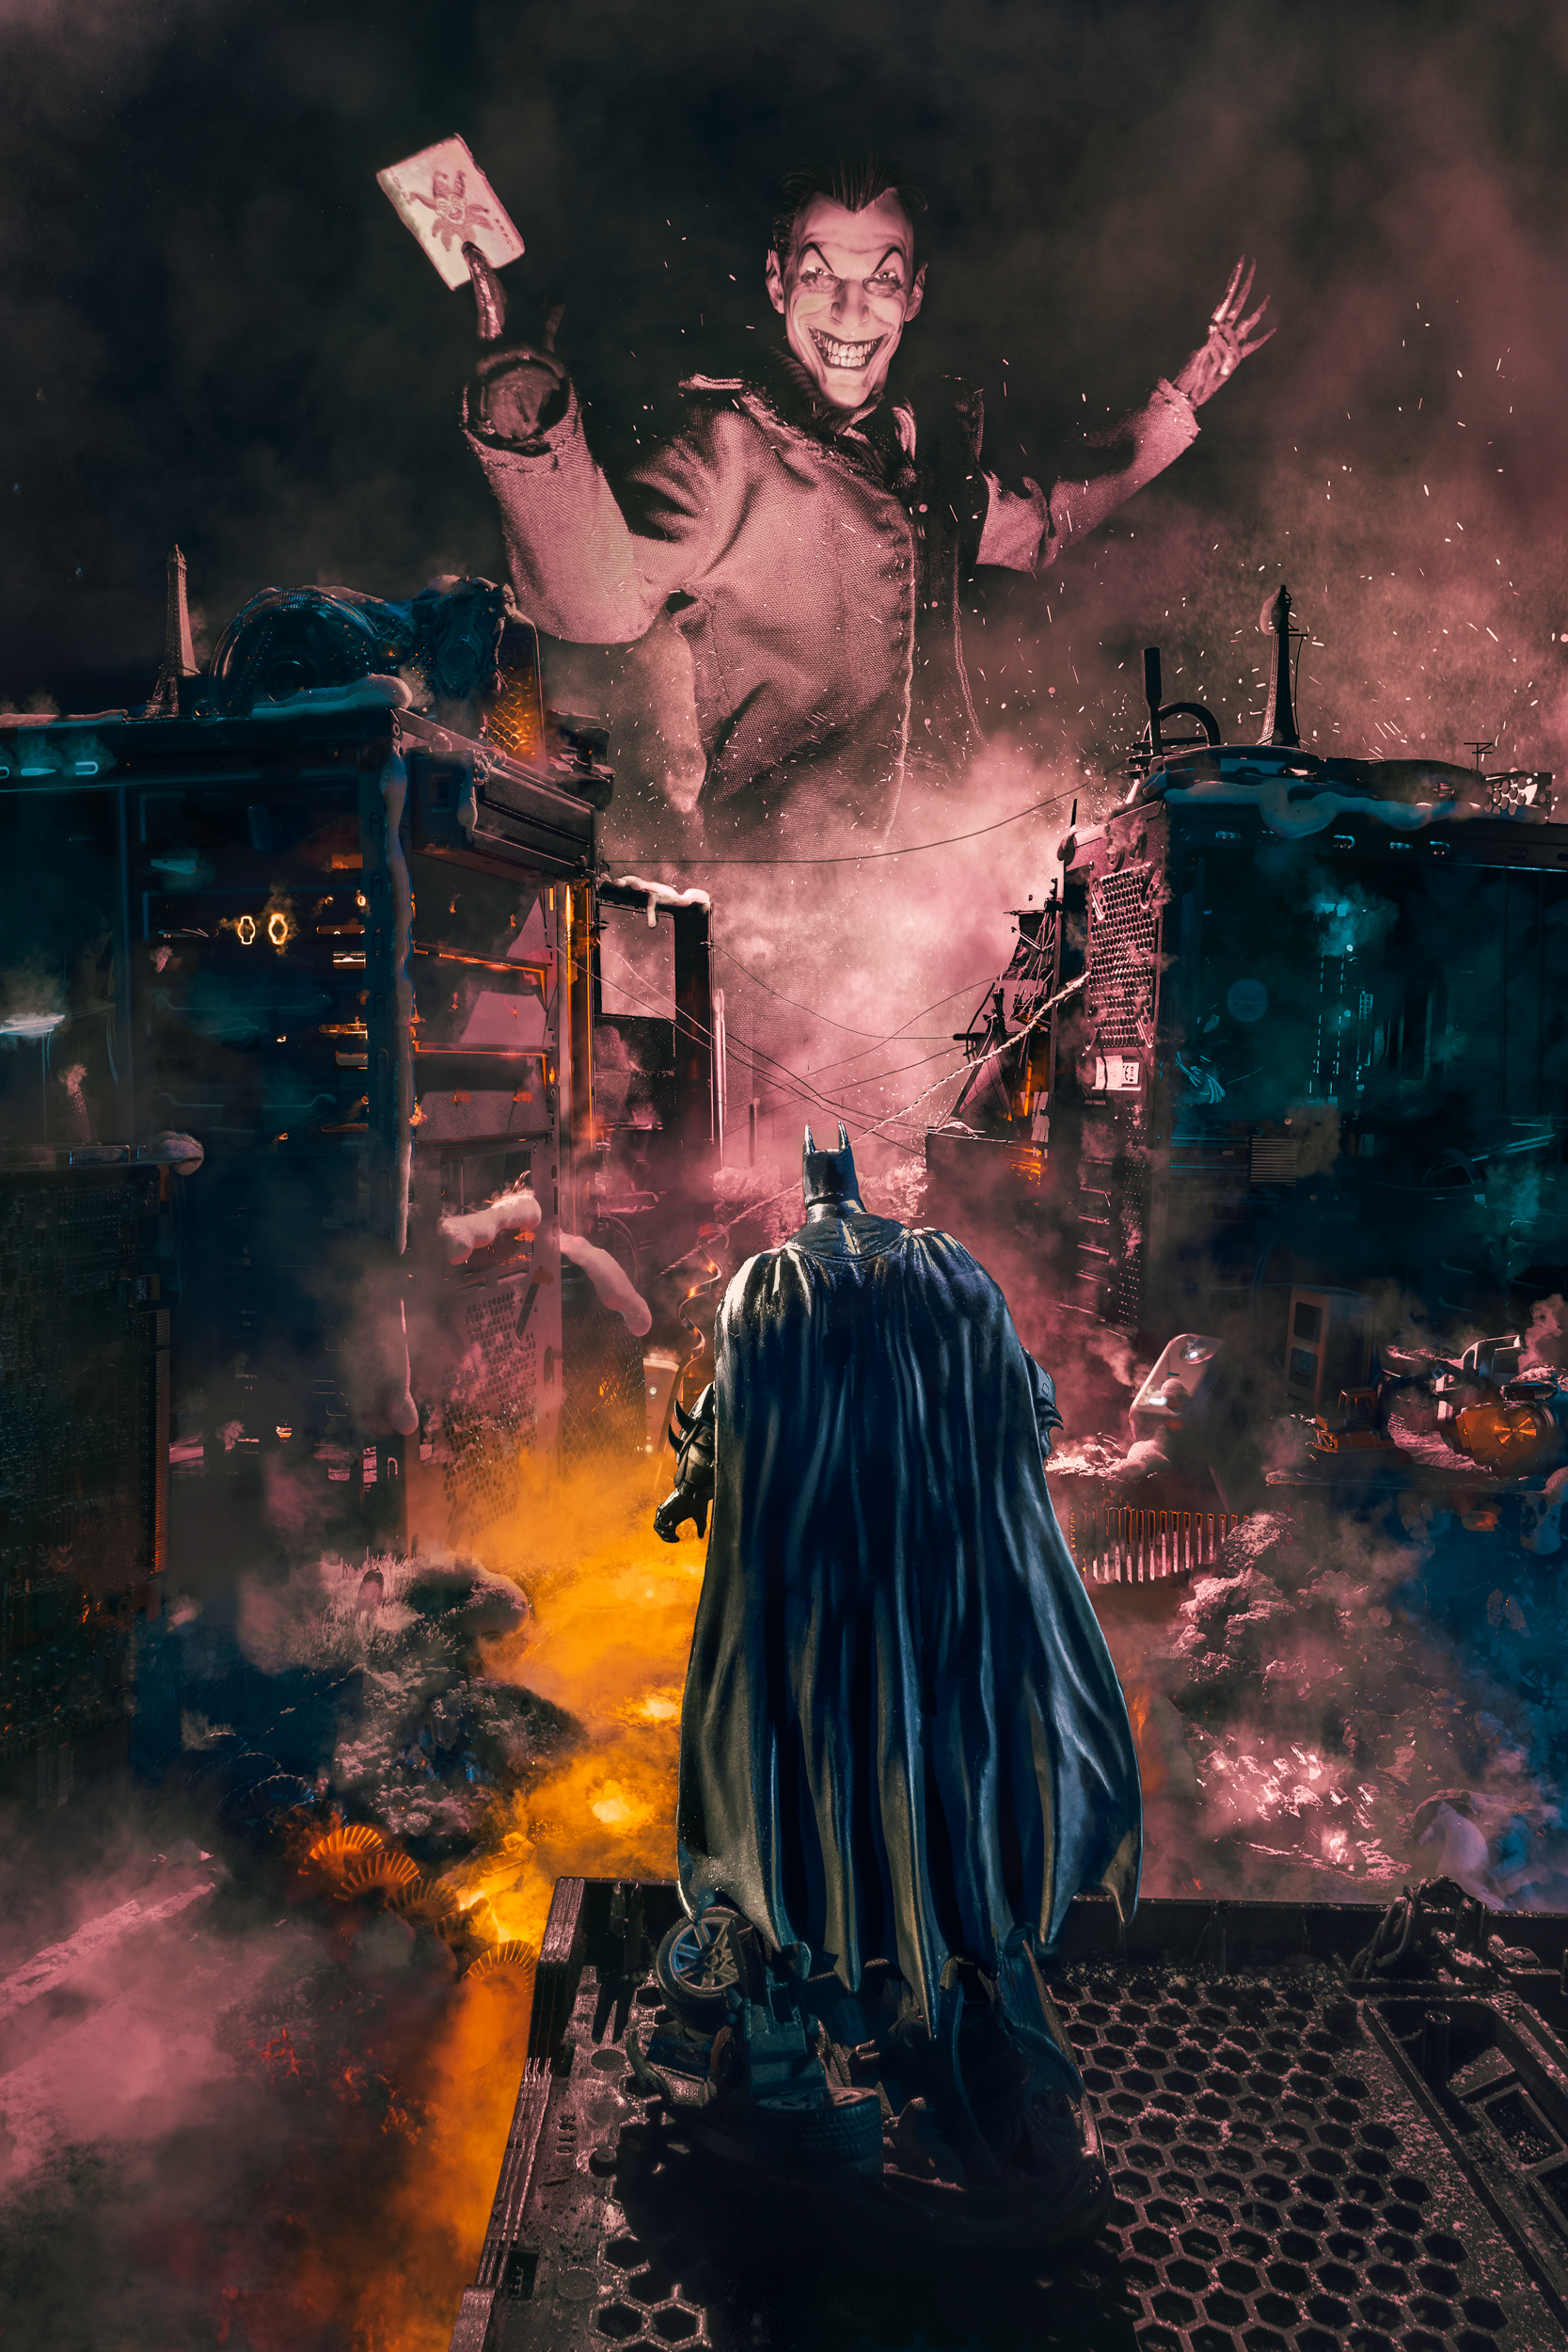 Mind games, Joker vs the Bat